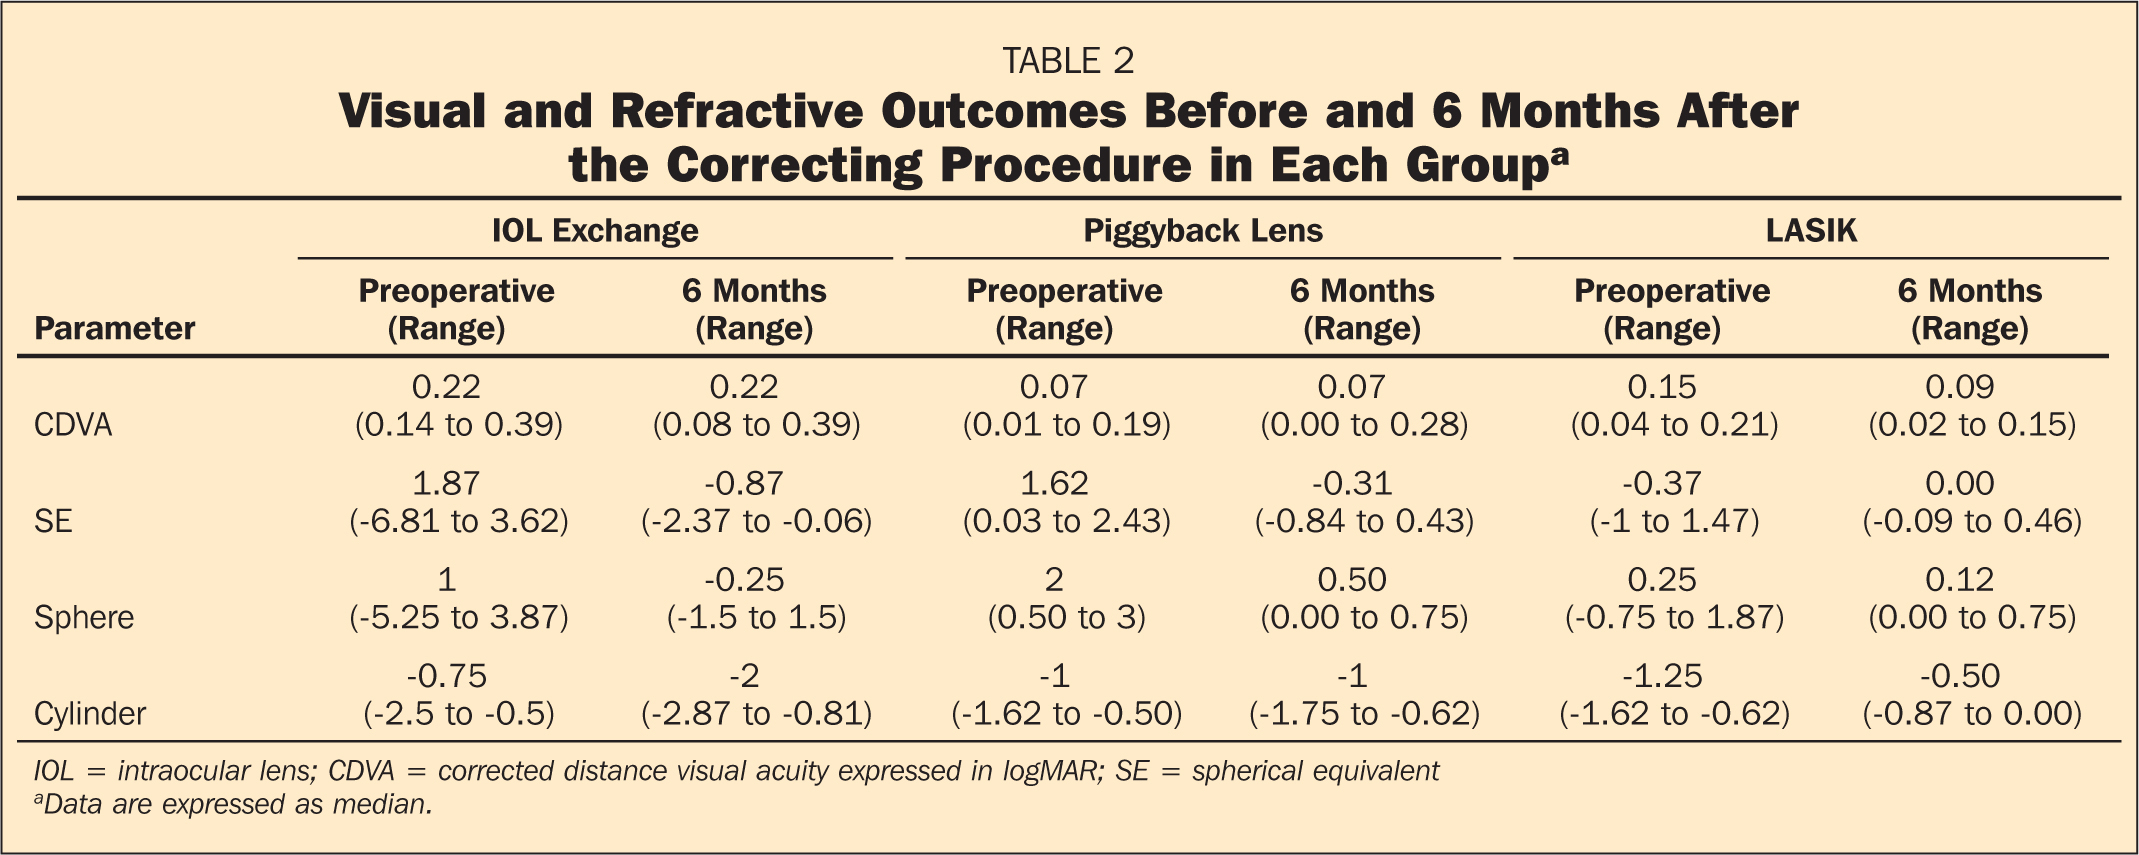 Visual and Refractive Outcomes Before and 6 Months After the Correcting Procedure in Each Groupa